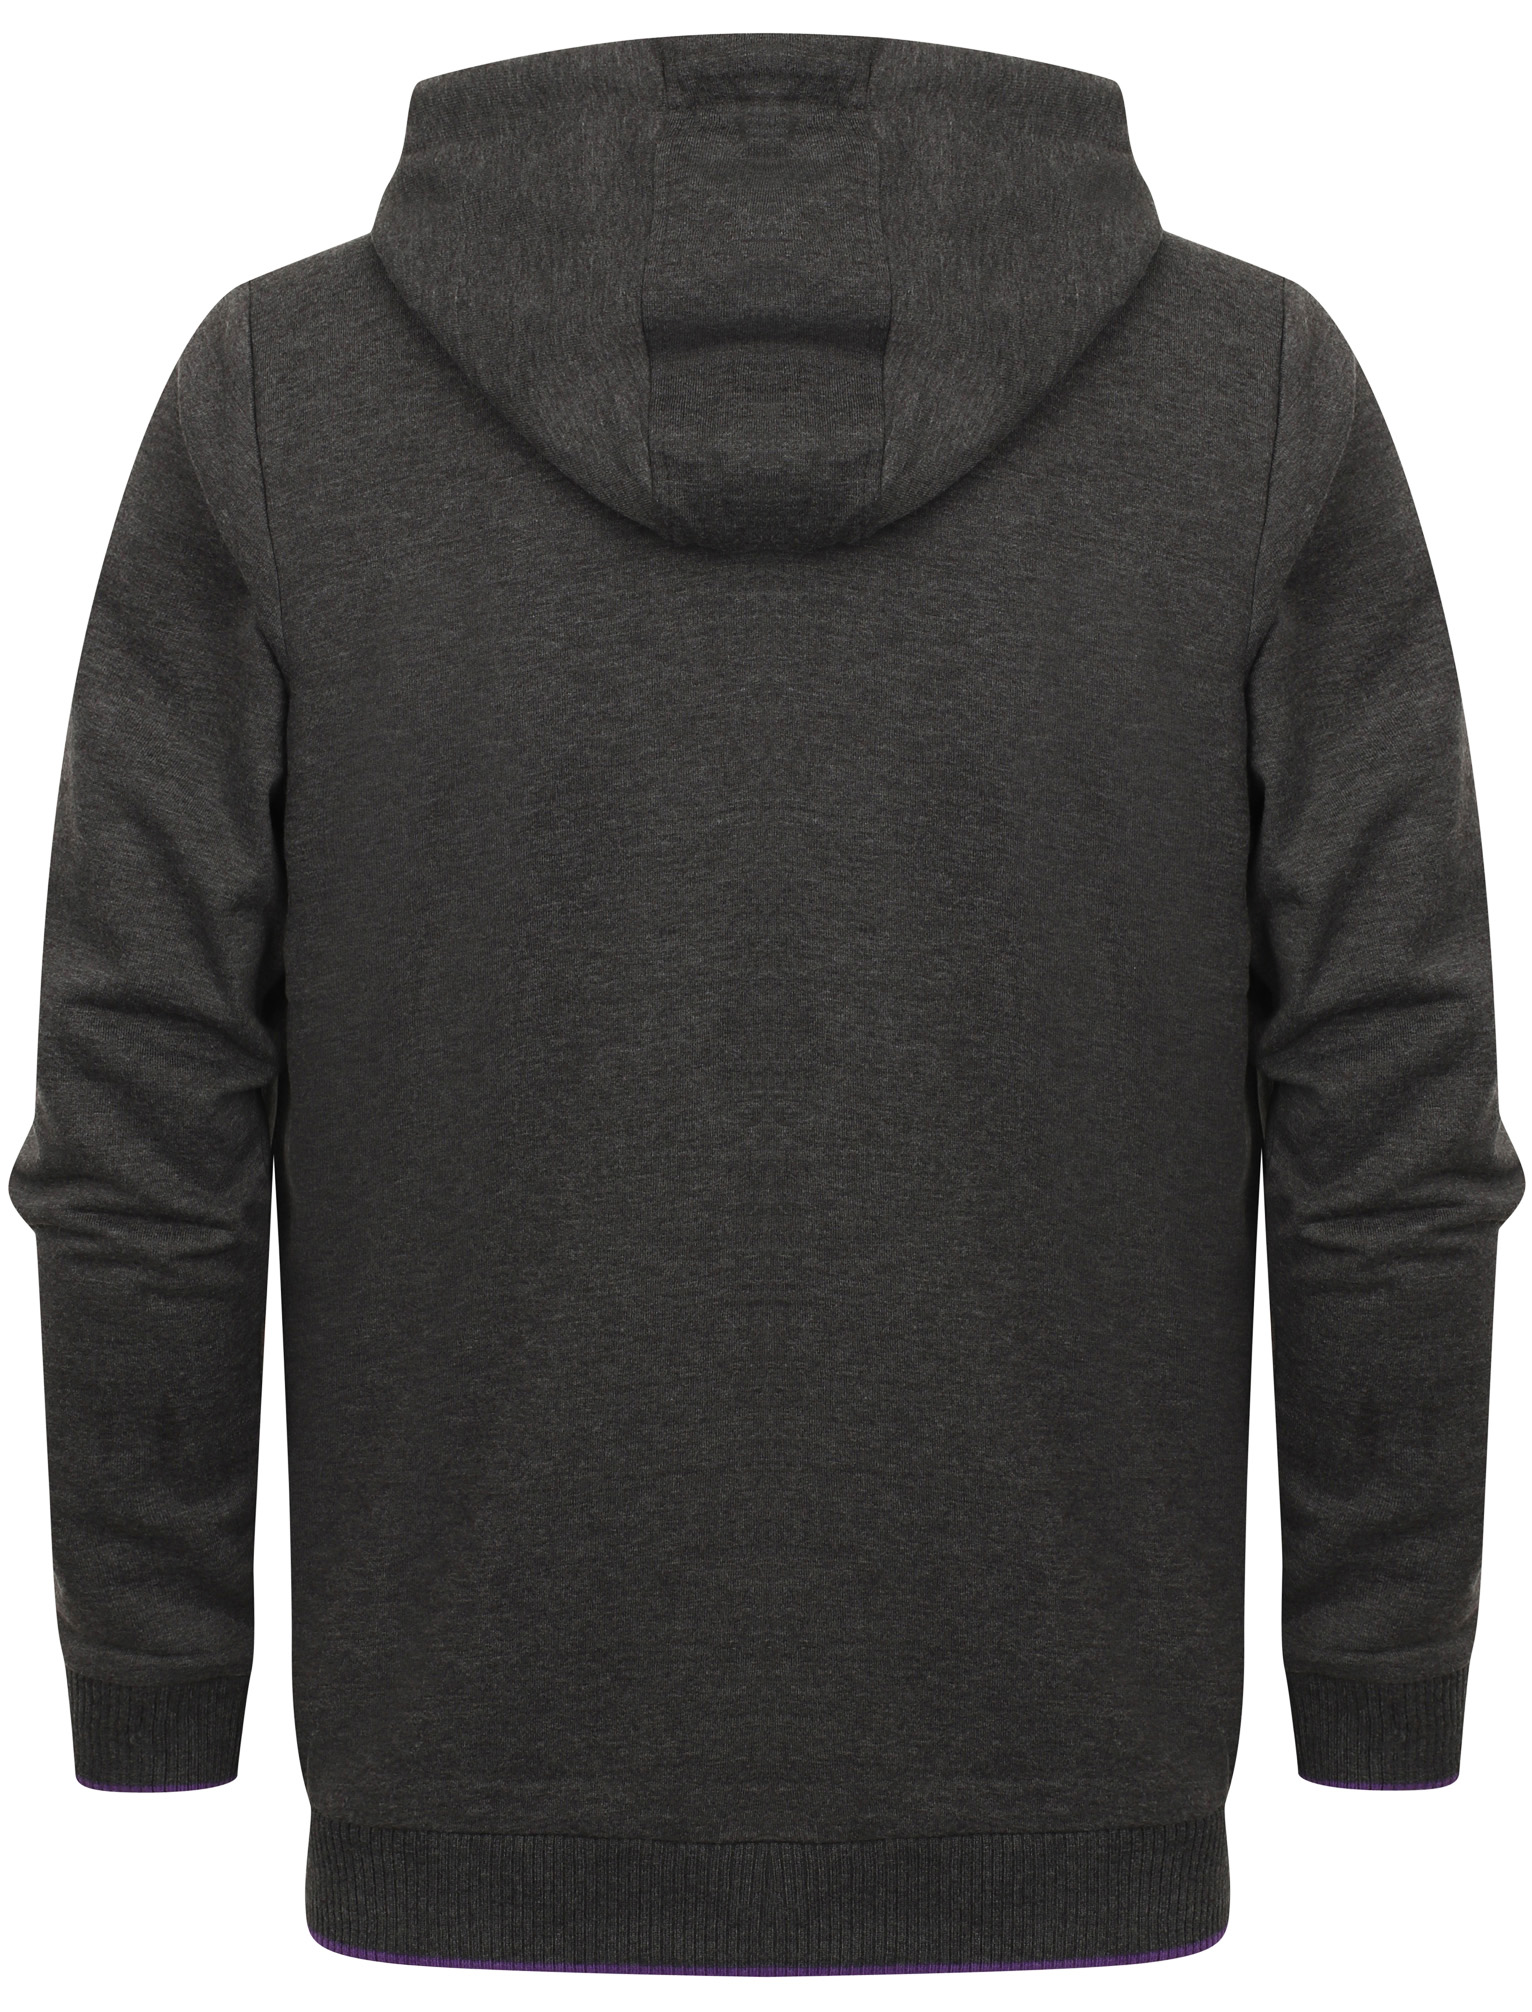 New-Mens-Tokyo-Laundry-Hanover-Cotton-Rich-Zip-Up-Contrast-Hoodie-Size-S-XXL thumbnail 10